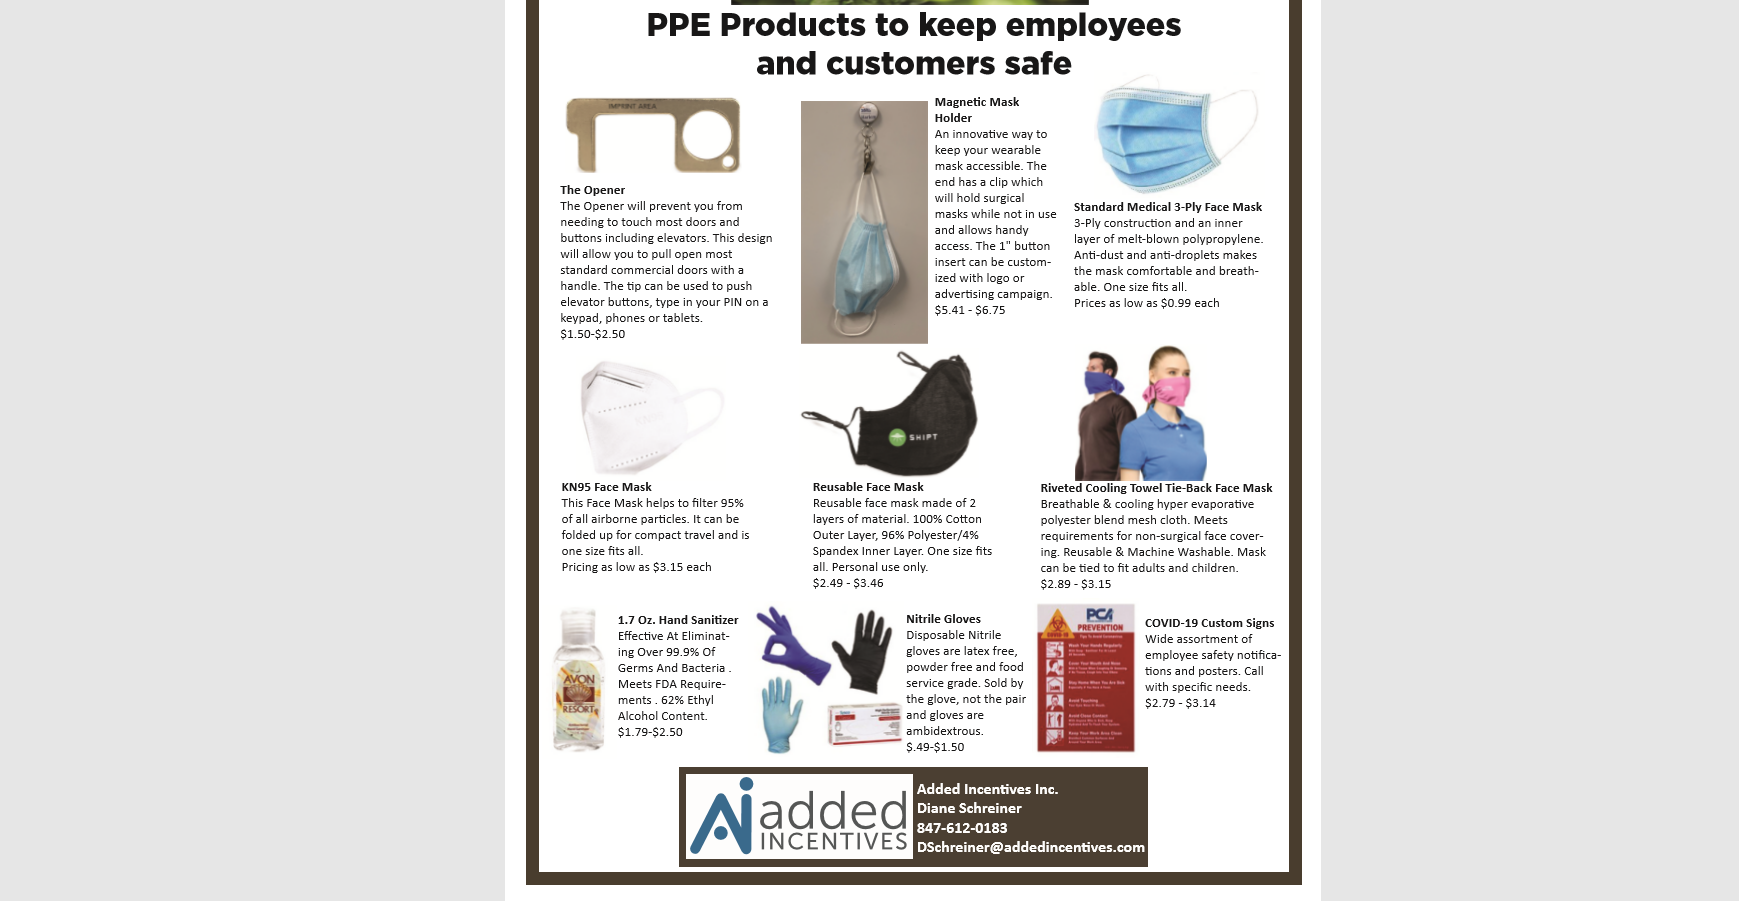 Exclusive Offer on PPE